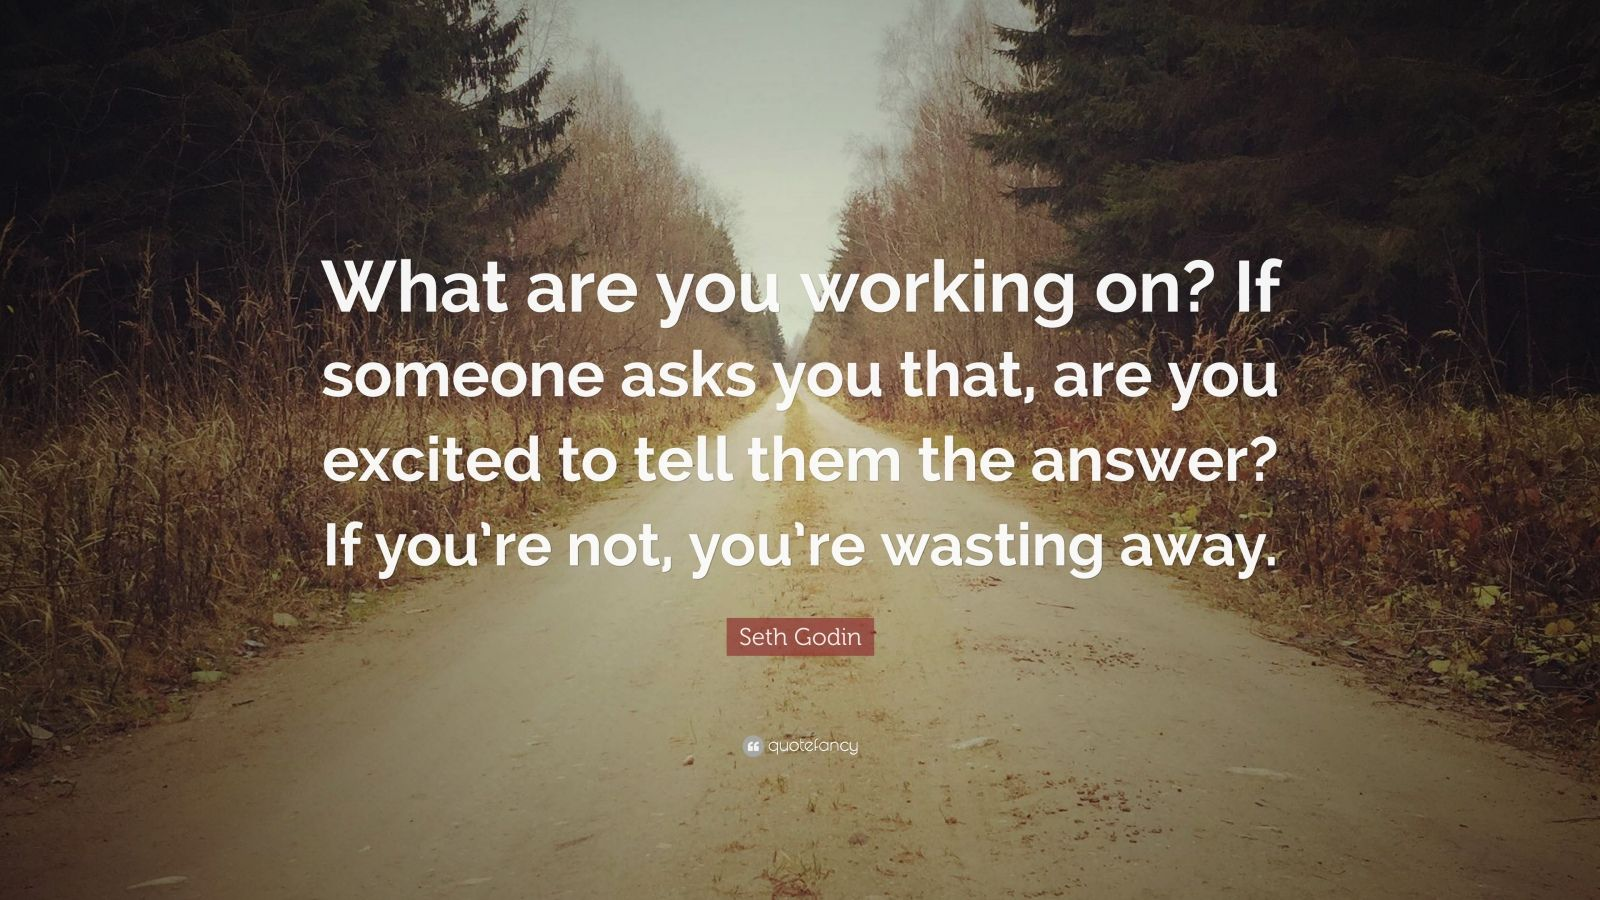 """Seth Godin Quote: """"What are you working on? If someone asks you that, are you excited to tell them the answer? If you're not, you're wasting away."""""""